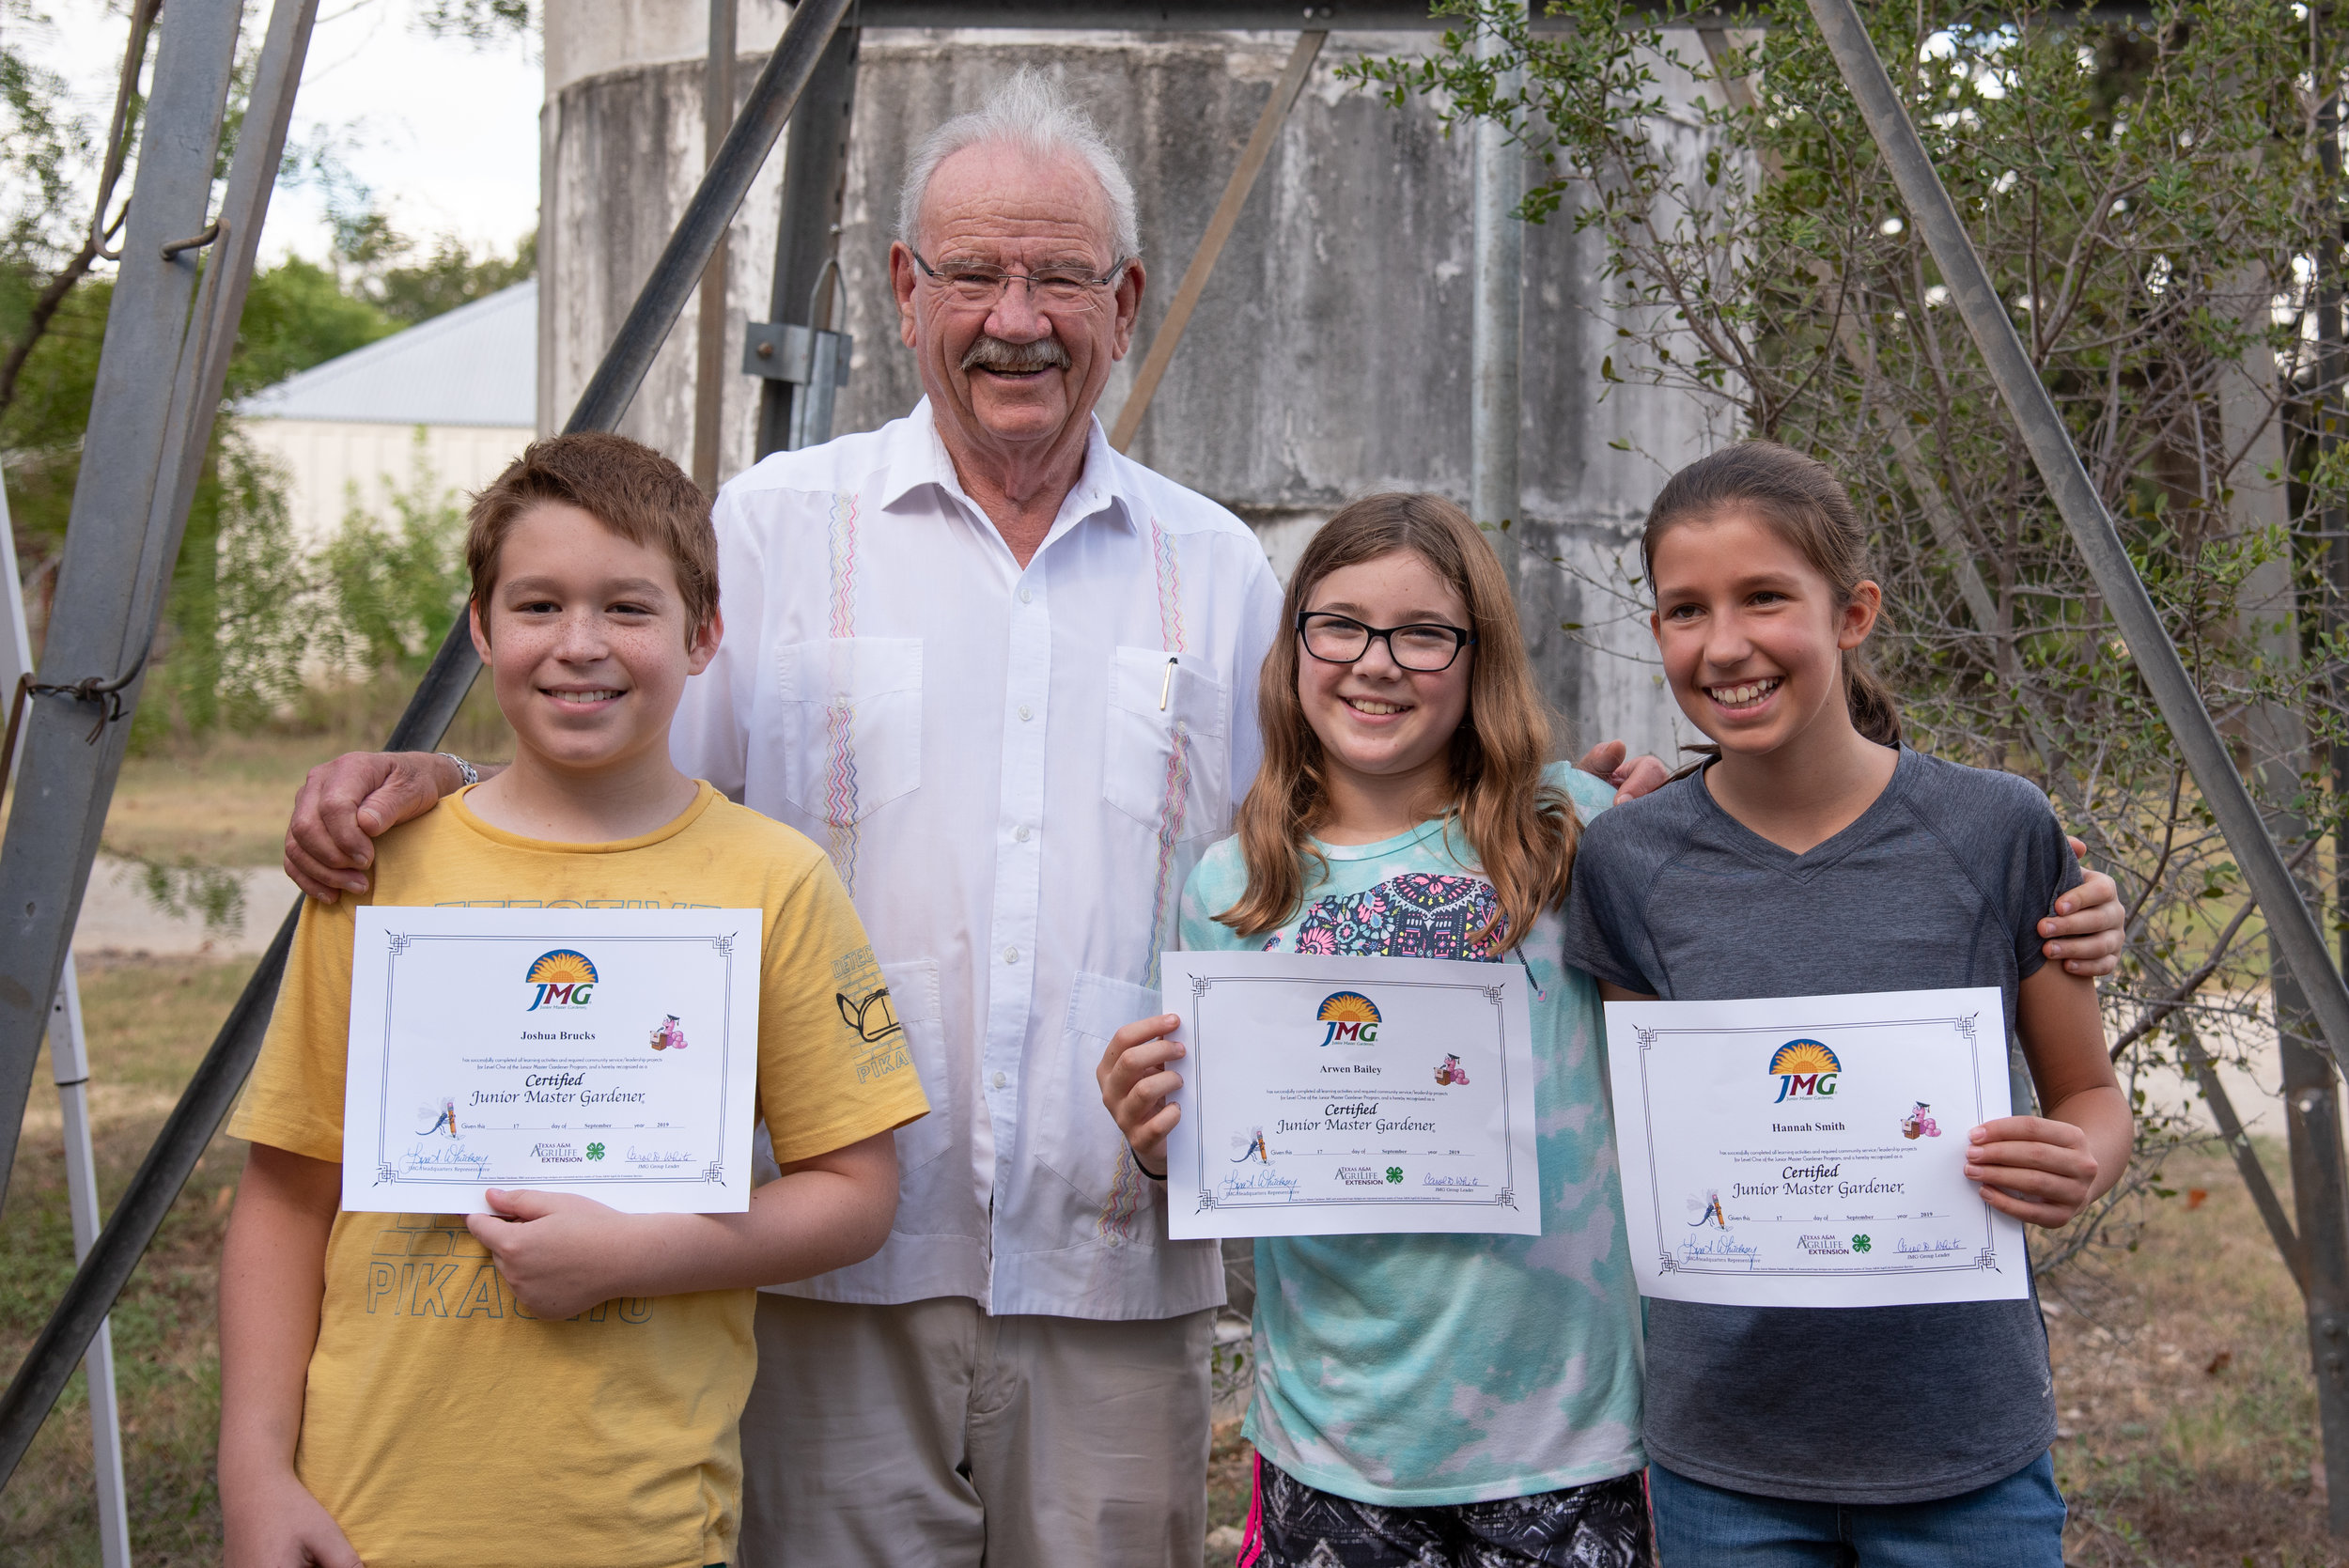 Former San Antonio Mayor and park namesake, Phil Hardberger (second from left) presented the Junior Master Gardener certificates to Joshua Brucks, Arwen Bailey, and Hannah Smith on Tuesday, September 24. They are the first Children's Vegetable Gardeners in the park to earn this certification.